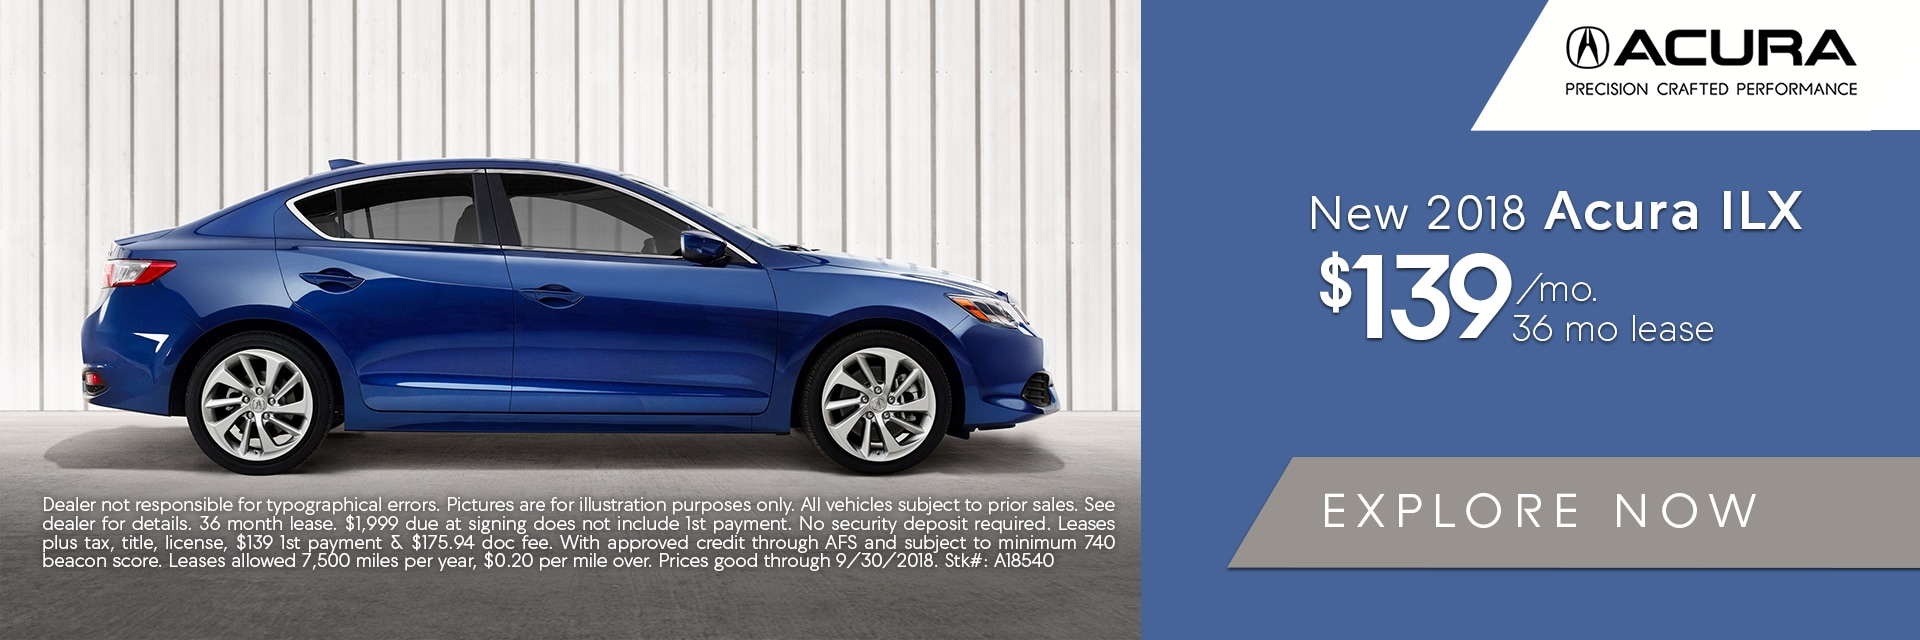 2018 Acura ILX Lease Deal